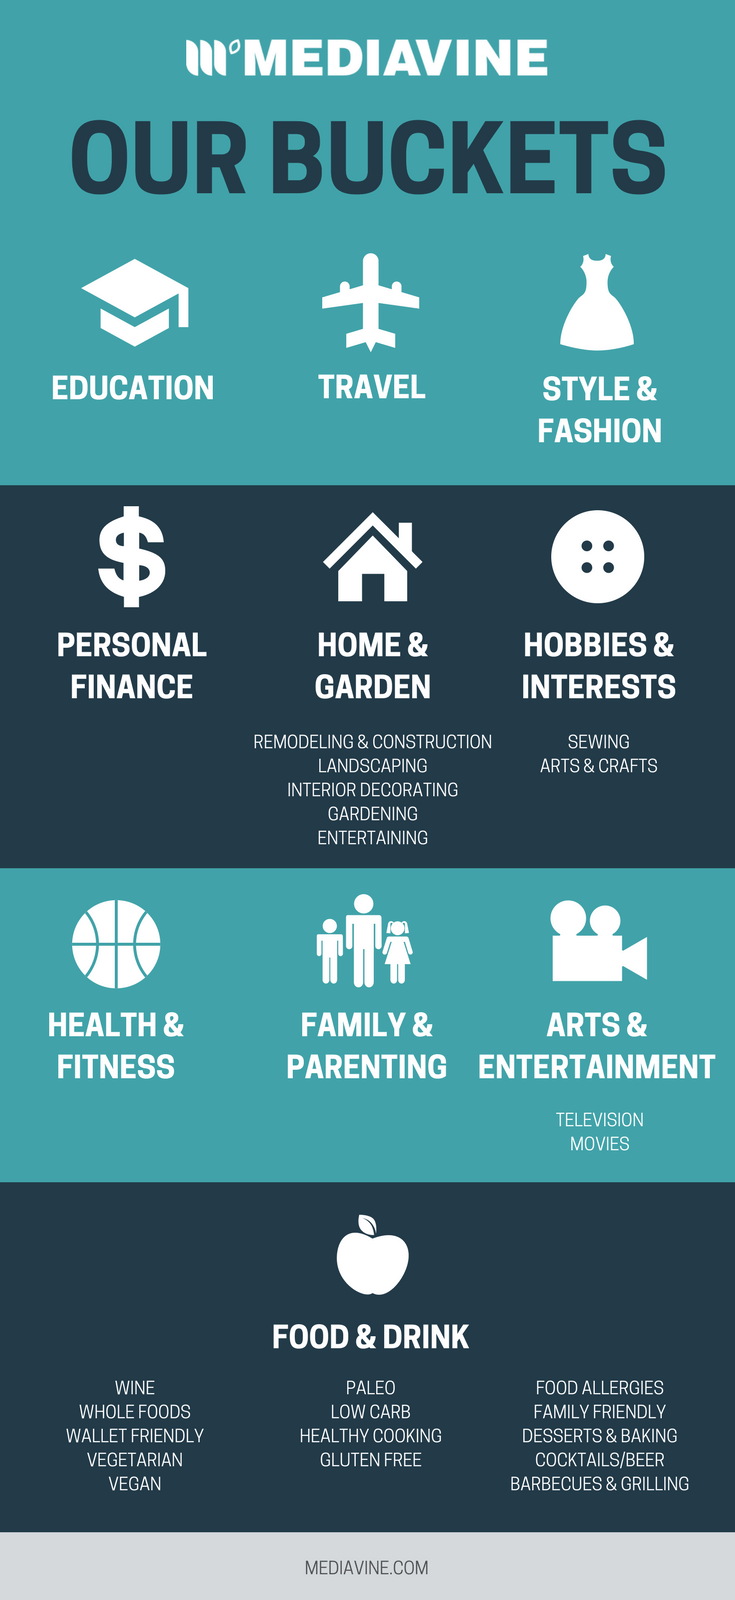 Mediavine's buckets include education, travel, style & fashion, personal finance, home & garden, hobbies and interests, health & fitness, family & parenting, food & drink, and arts & entertainment.